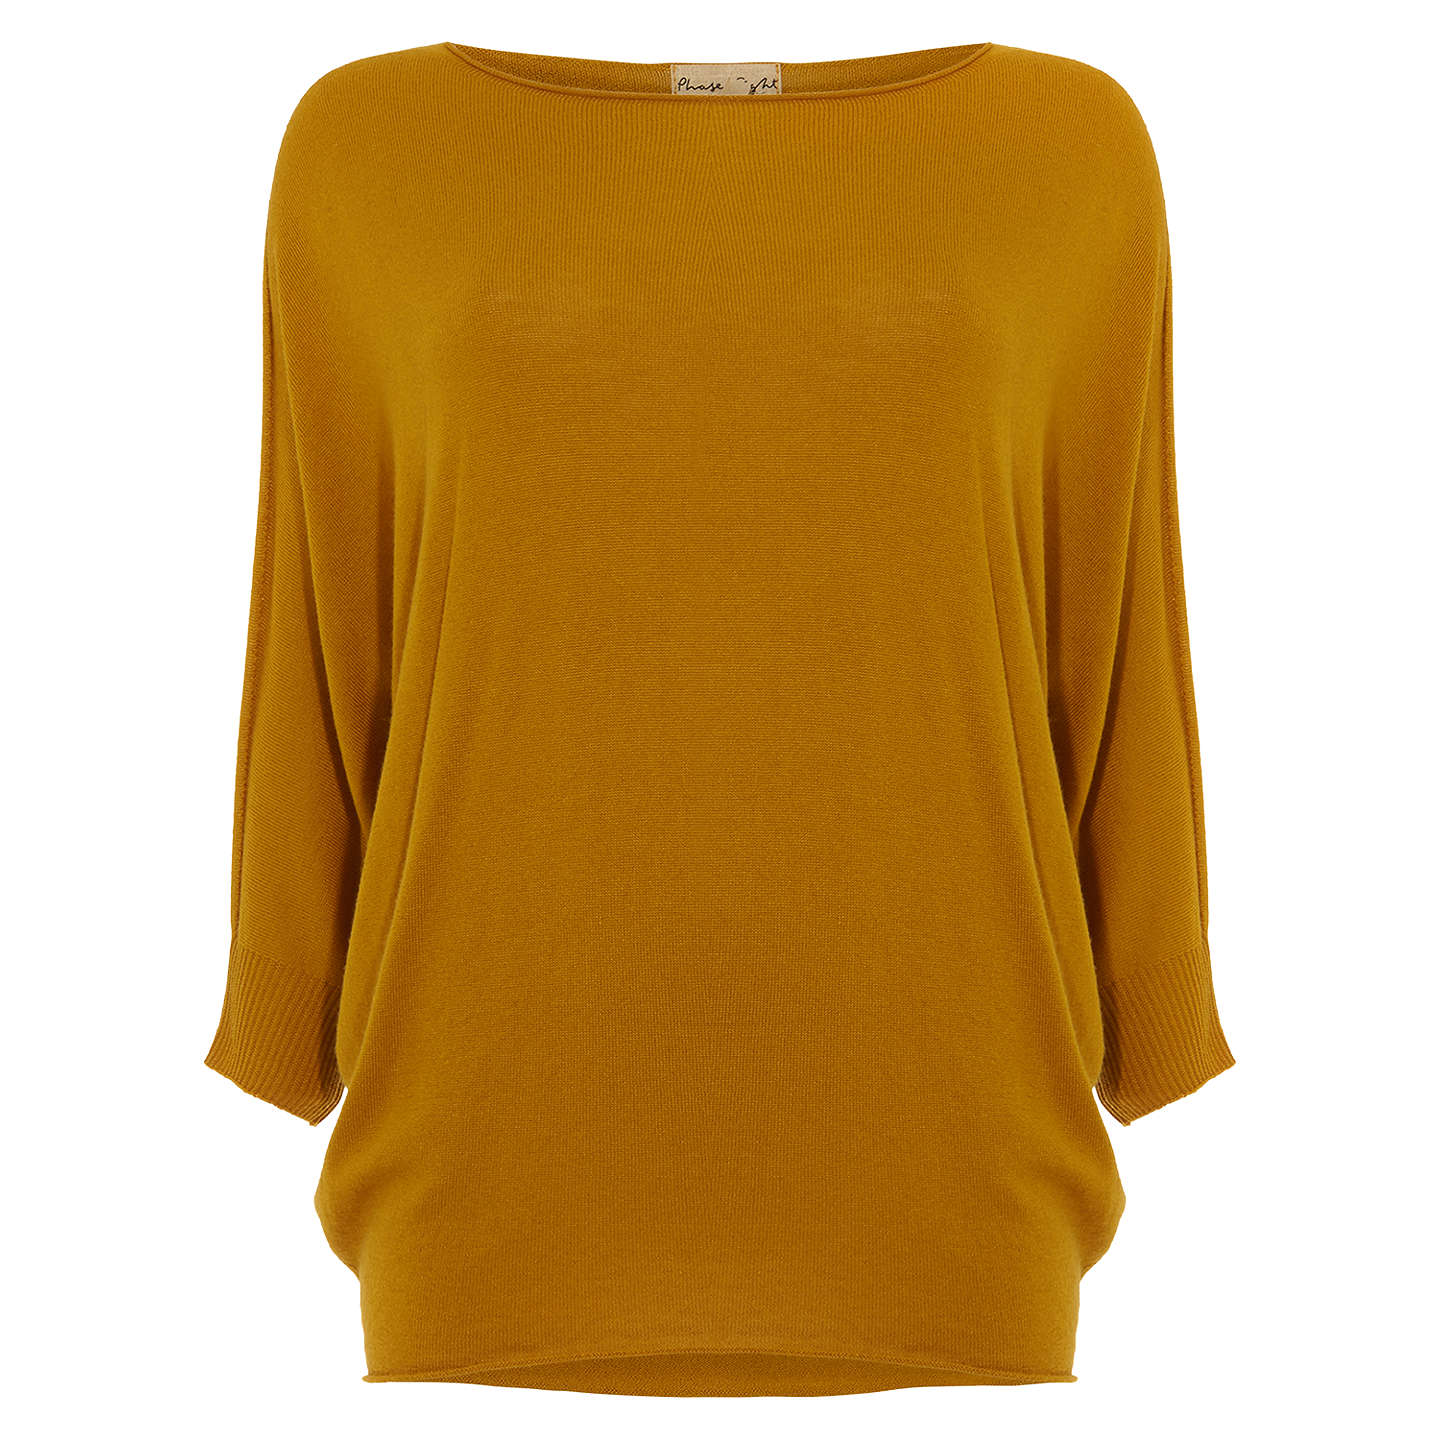 BuyPhase Eight Becca Batwing Knitted Jumper, Mustard, XS Online at johnlewis.com